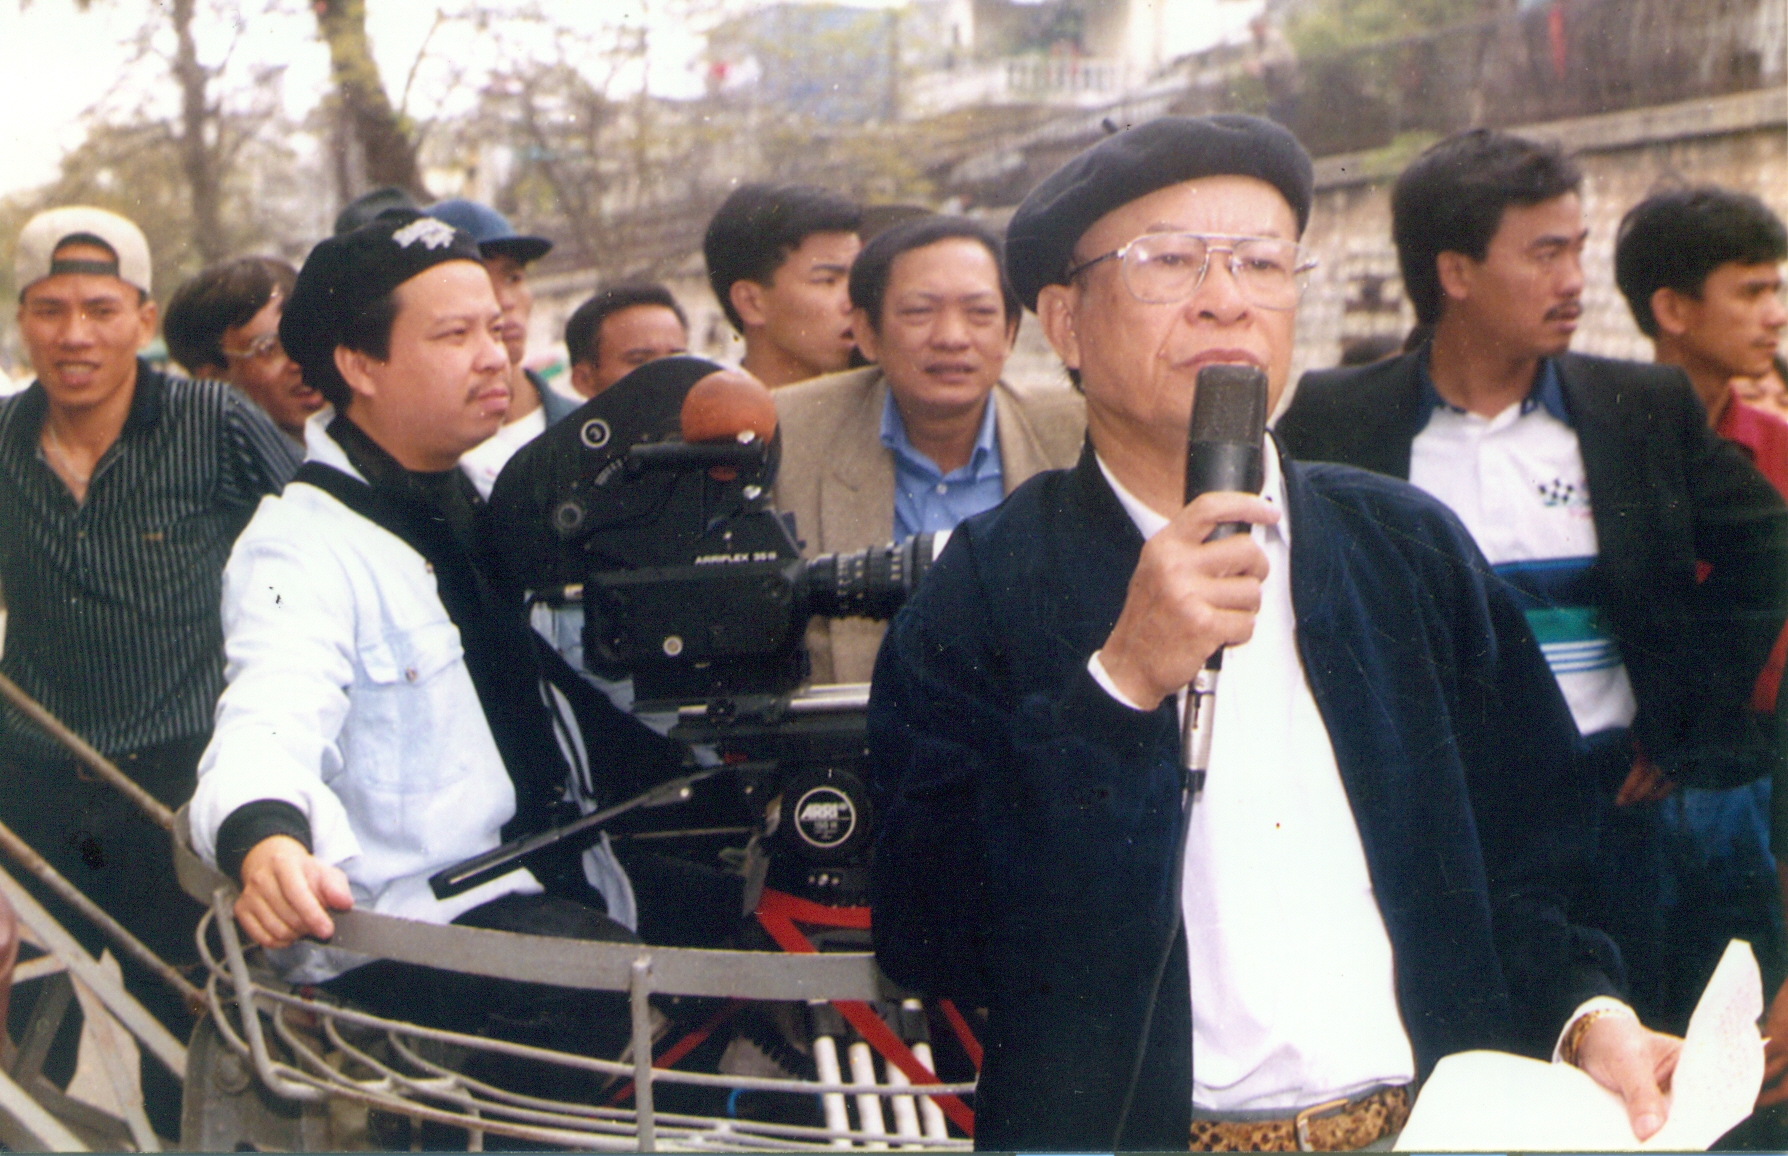 Director Bui Dinh Hac: President Ho-an endless inspiration